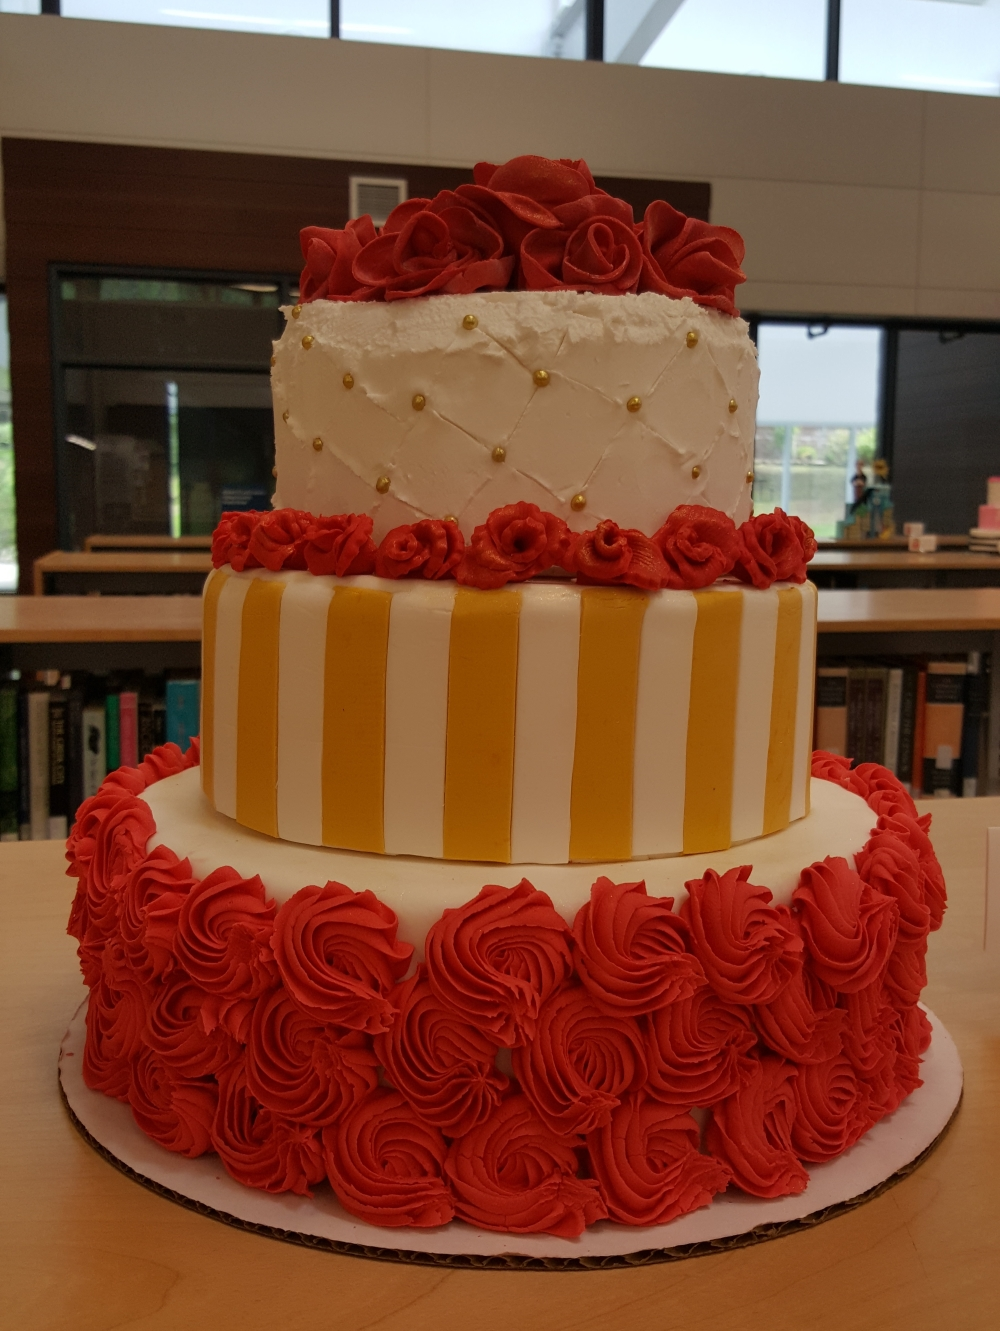 2019 Cakes Red Roses - side view